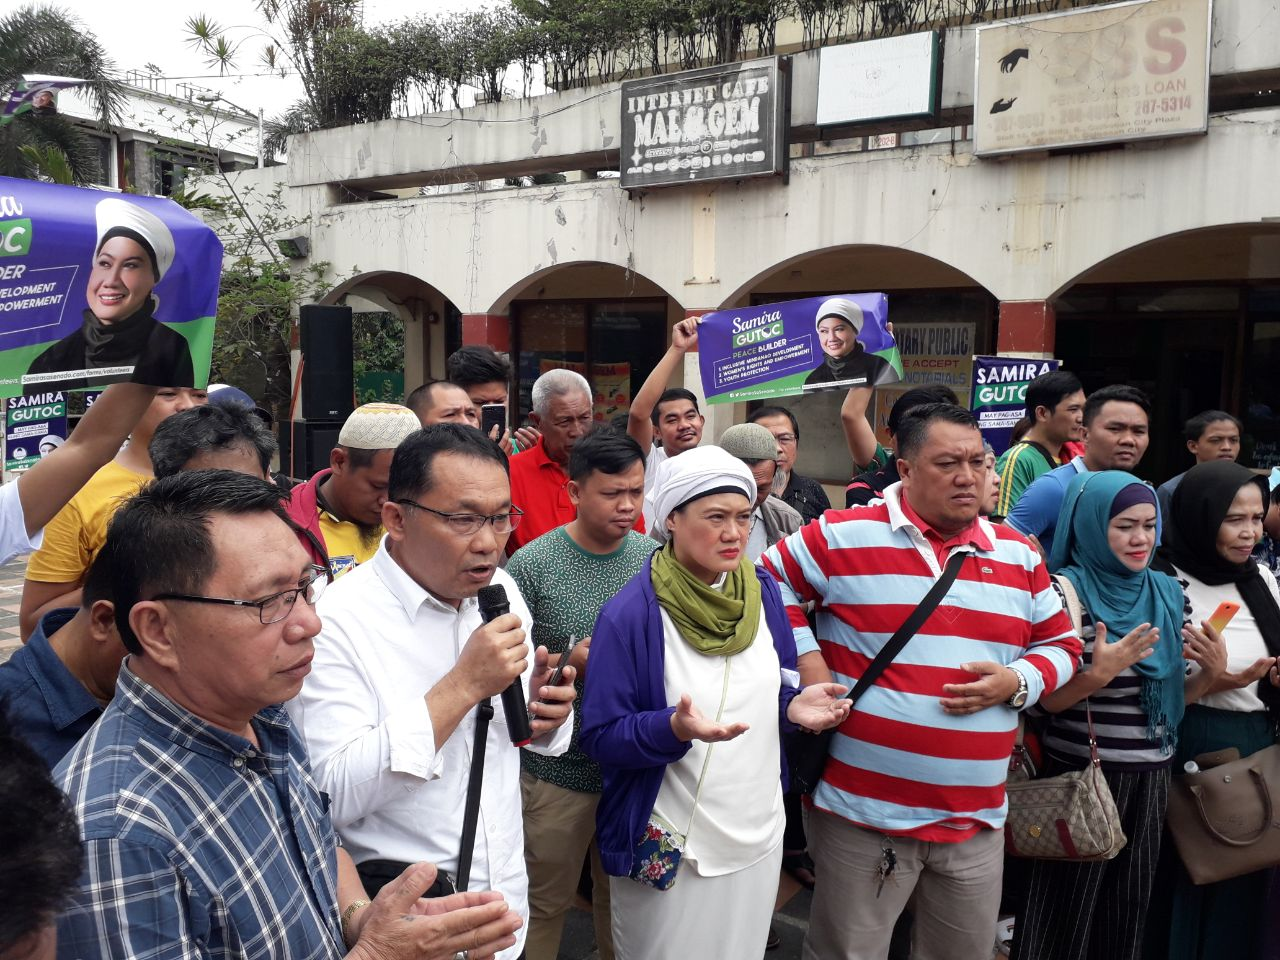 OTSO DIRETSO. Mindanaoan candidate Samira Gutoc kicks off the Otso Diretso campaign with a prayer rally in Caloocan City on February 12, 2019. Photo by Lian Buan/Rappler